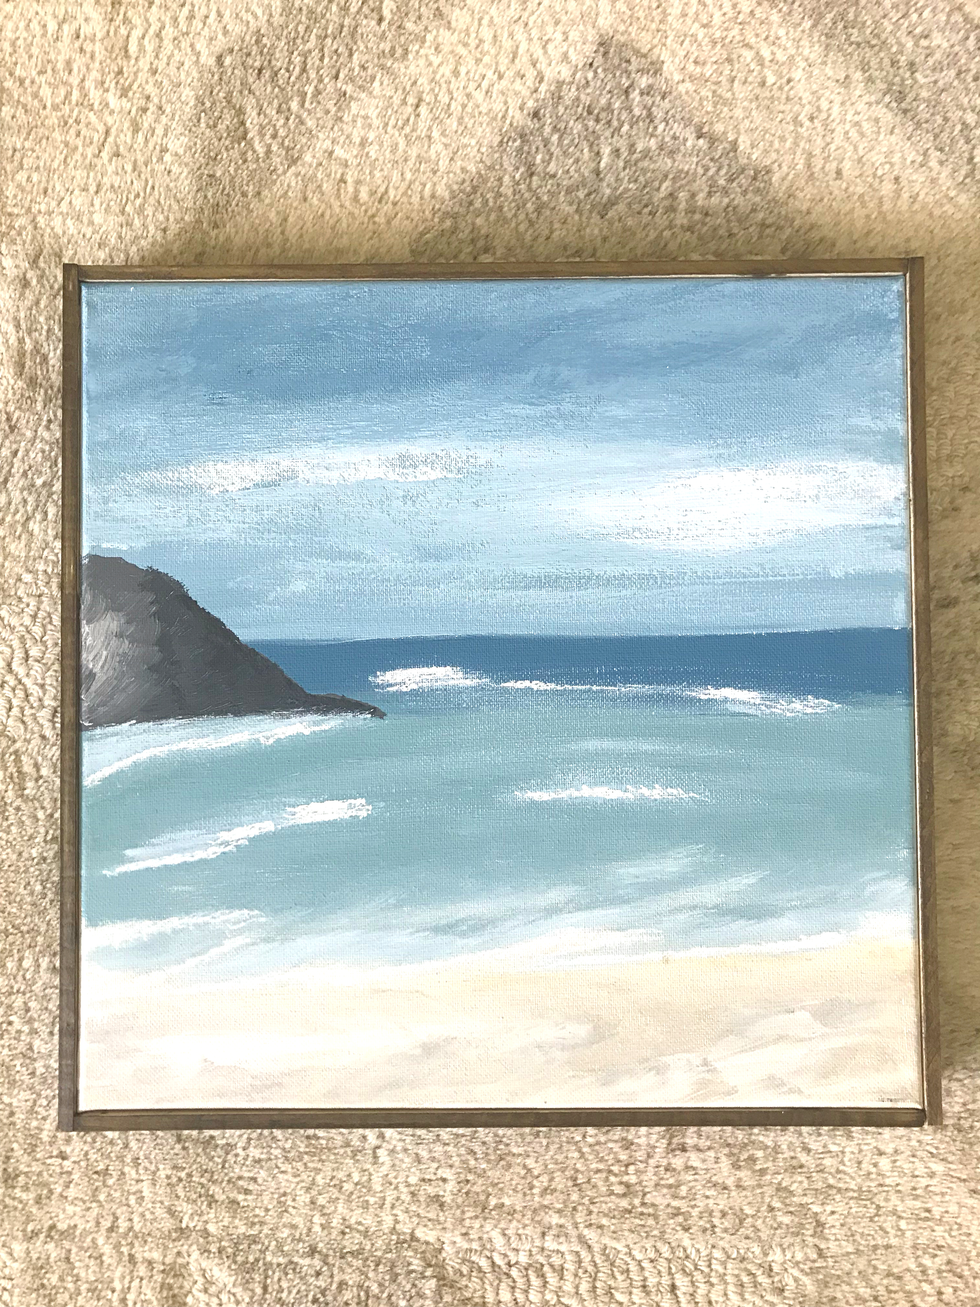 12 x 12 - Acrylic on gallery wrapped canvas